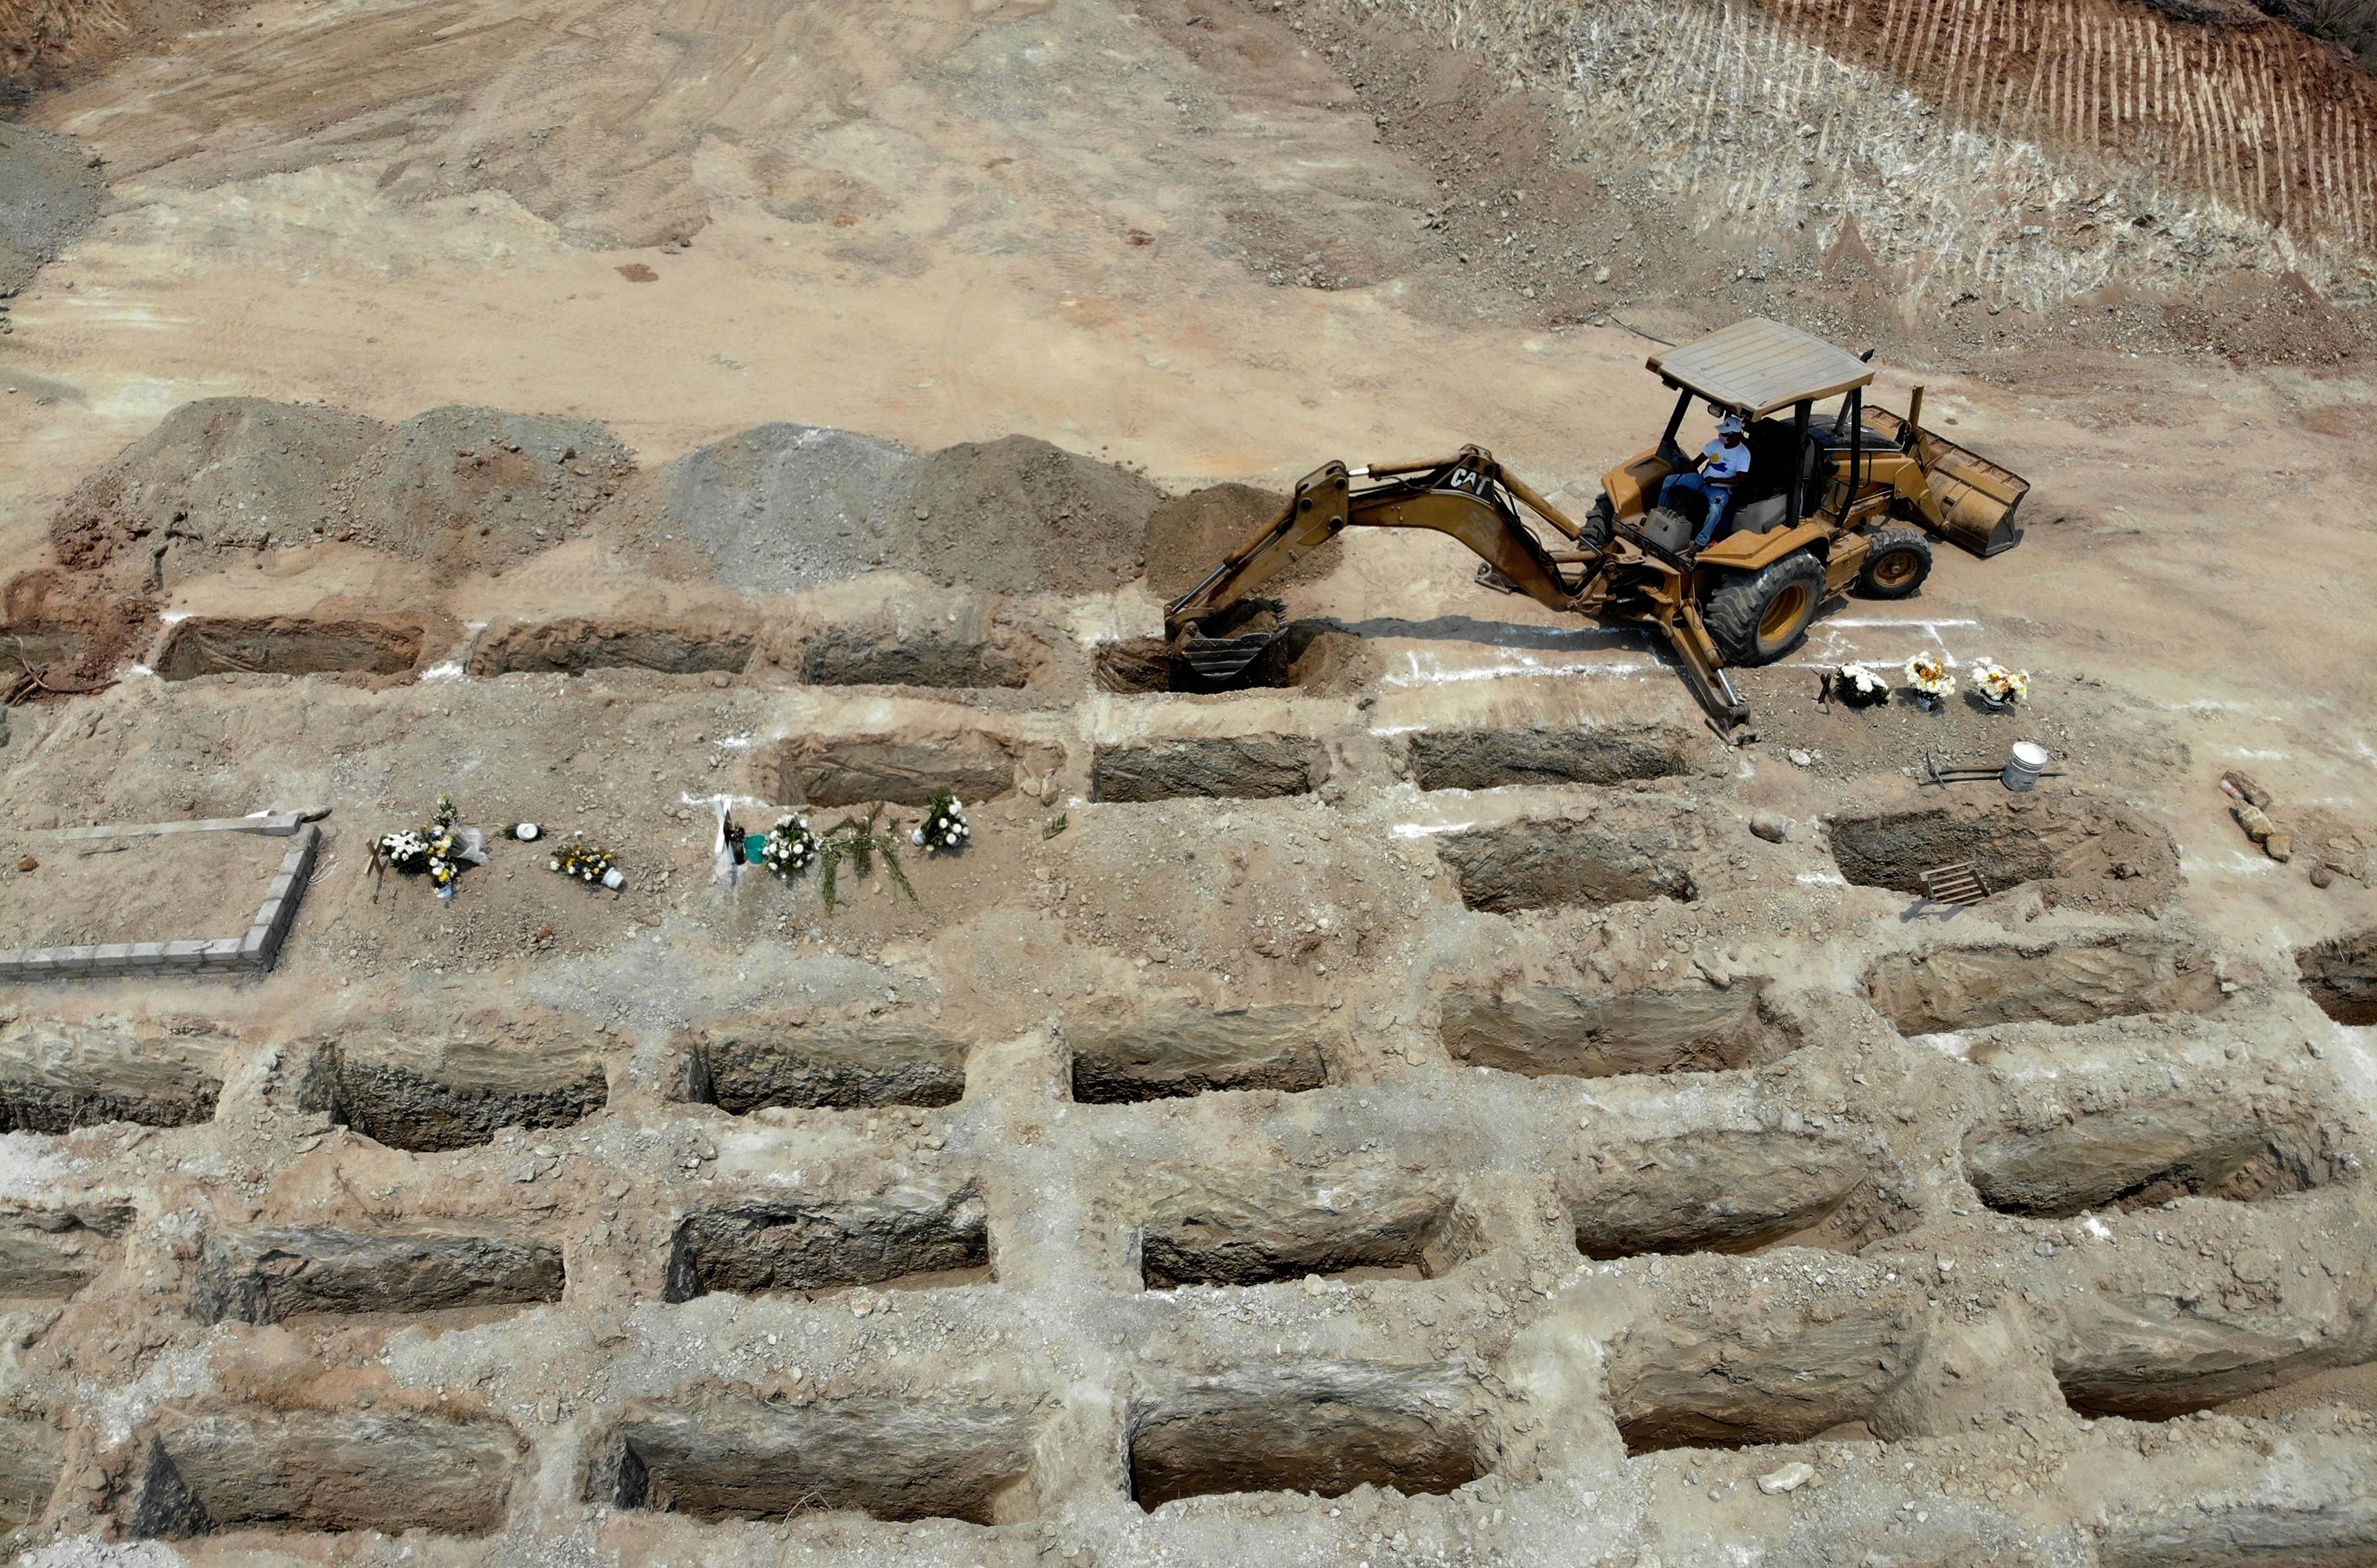 Workers dig 300 graves at the El Palmar Phanteon for coronavirus victims in Acapulco, Mexico on May 22.